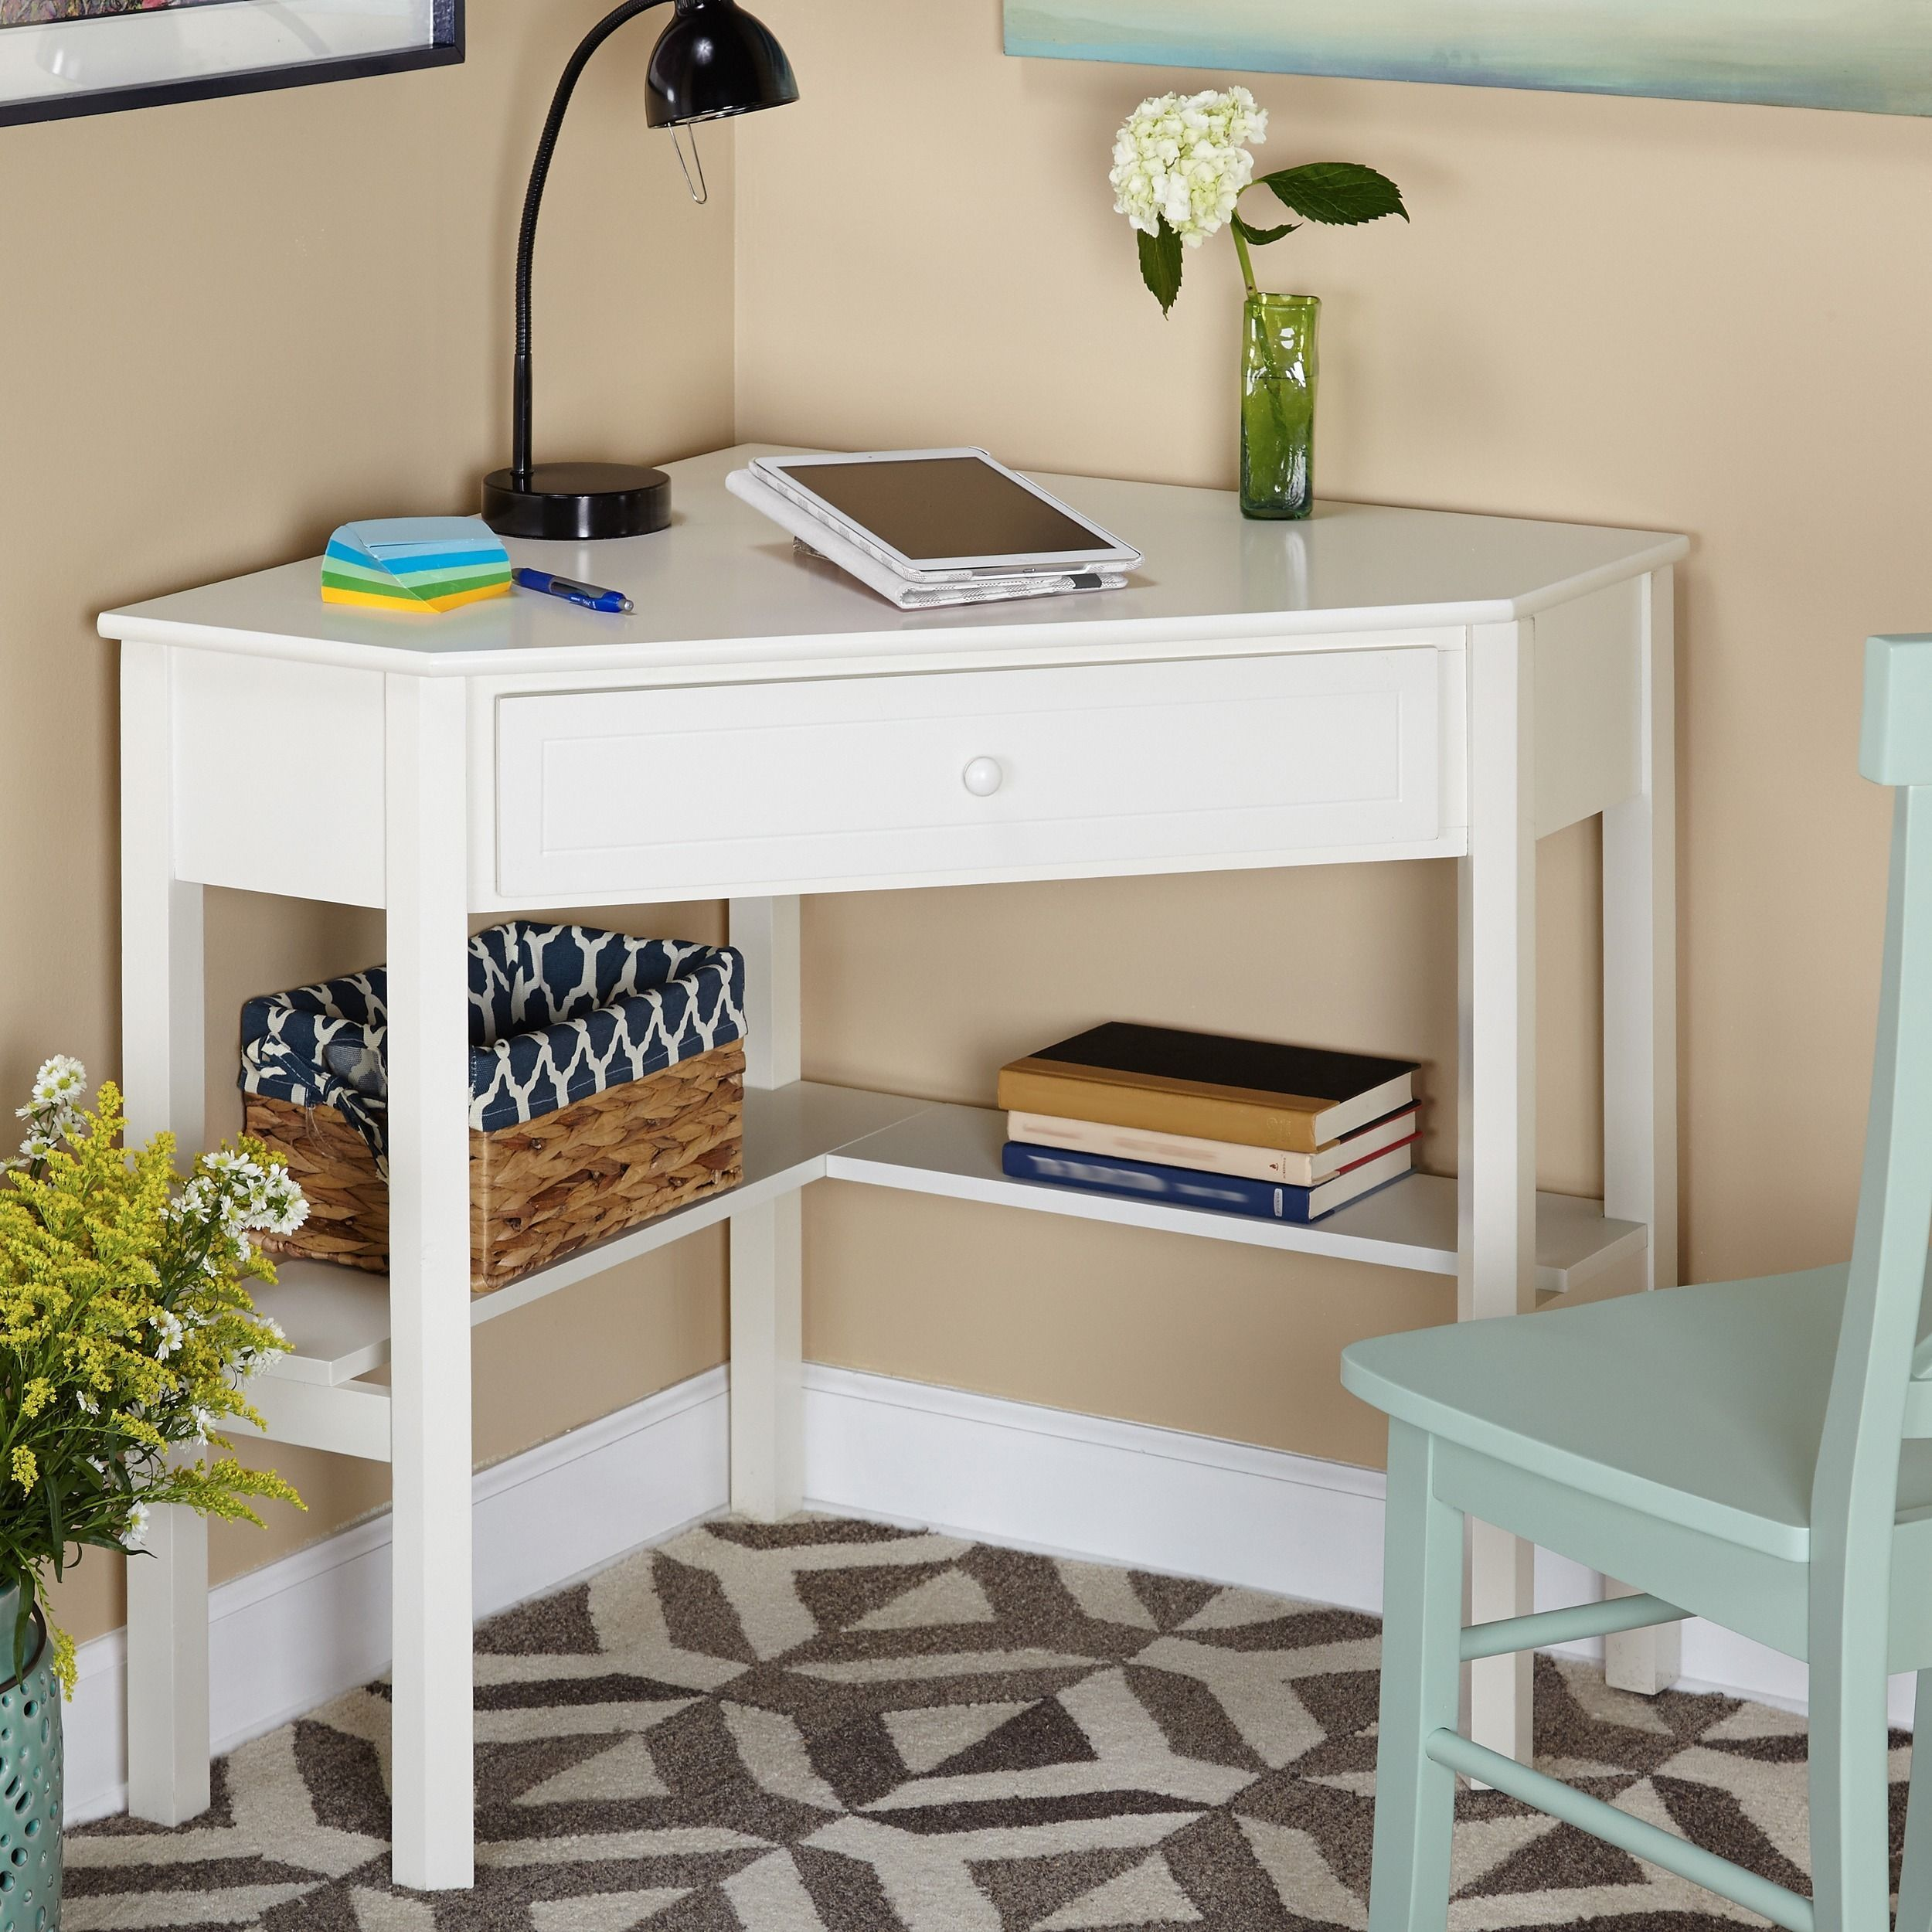 Find Ideas And Inspiration For Built In Corner Desk To Add To Your Own Home Cornerdeskareaideas Desks For Small Spaces Corner Writing Desk Home